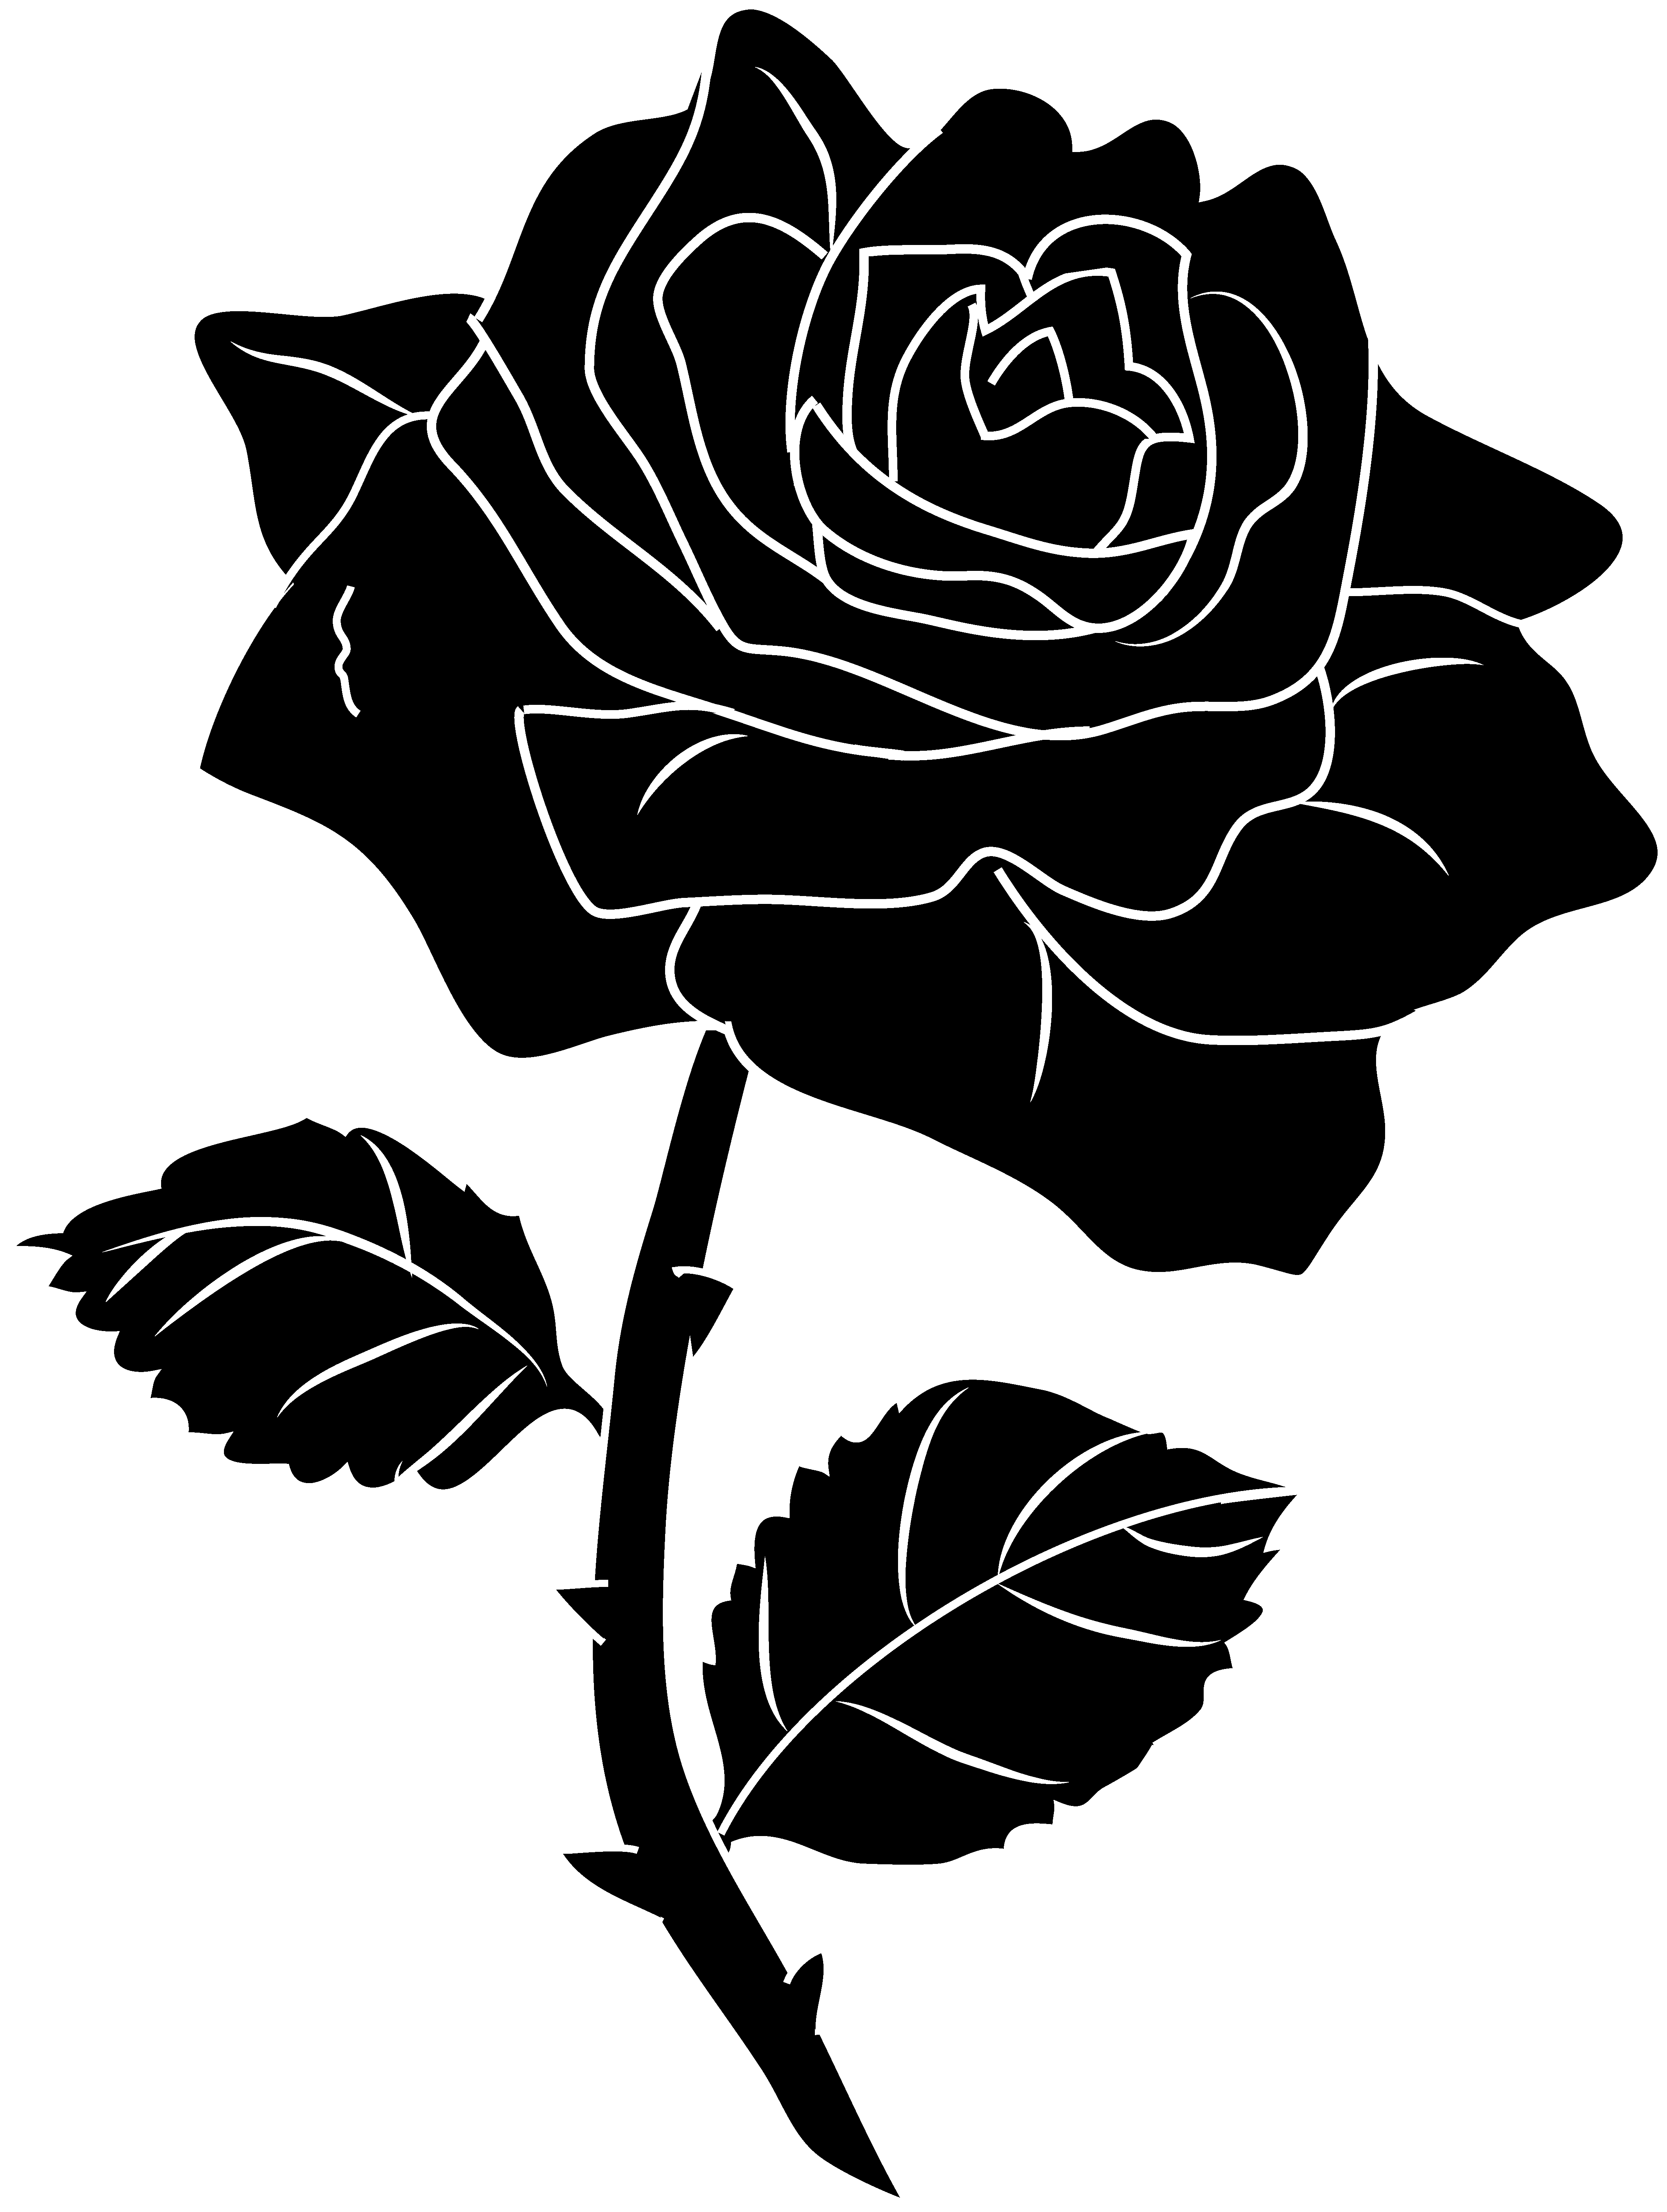 Rose 3 Silhouette Png 4429 5878 Silhouette Clip Art Silhouette Free Flower Silhouette